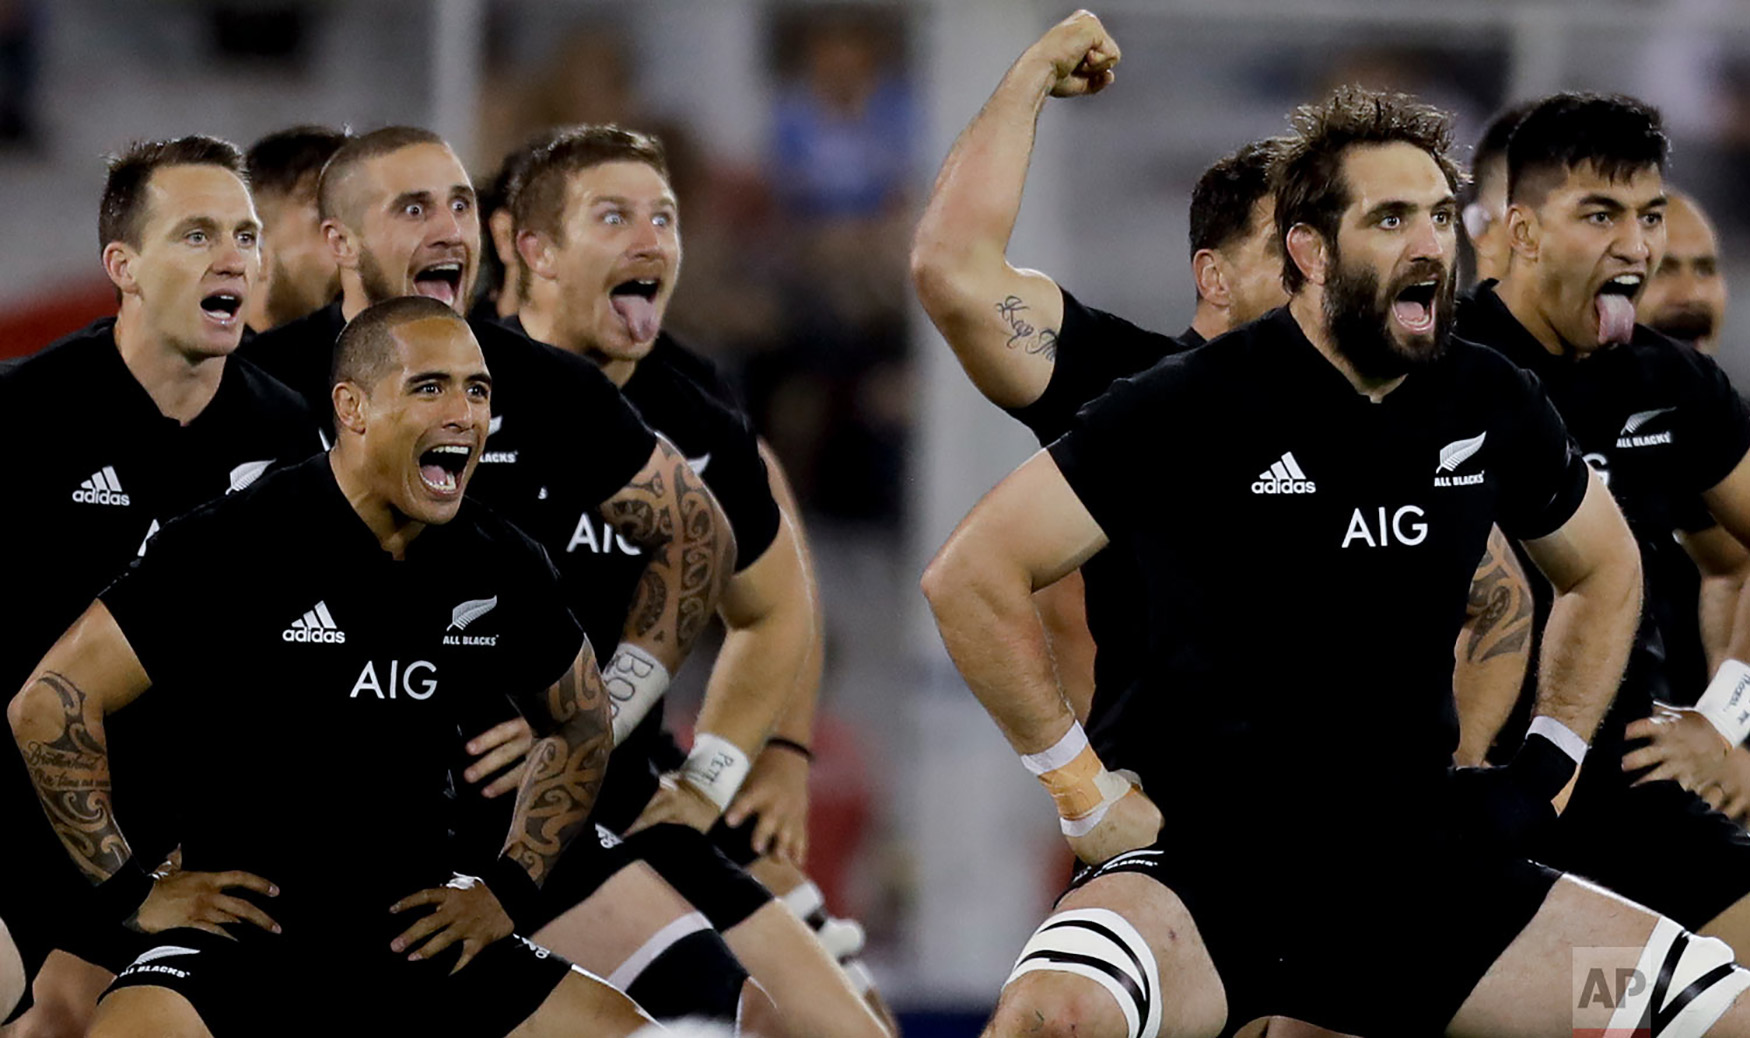 New Zealand's All Blacks players perform the Haka during a rugby Championship match against Argentina's Los Pumas, in Buenos Aires, Argentina, Sept. 29, 2018. (AP Photo/Natacha Pisarenko)